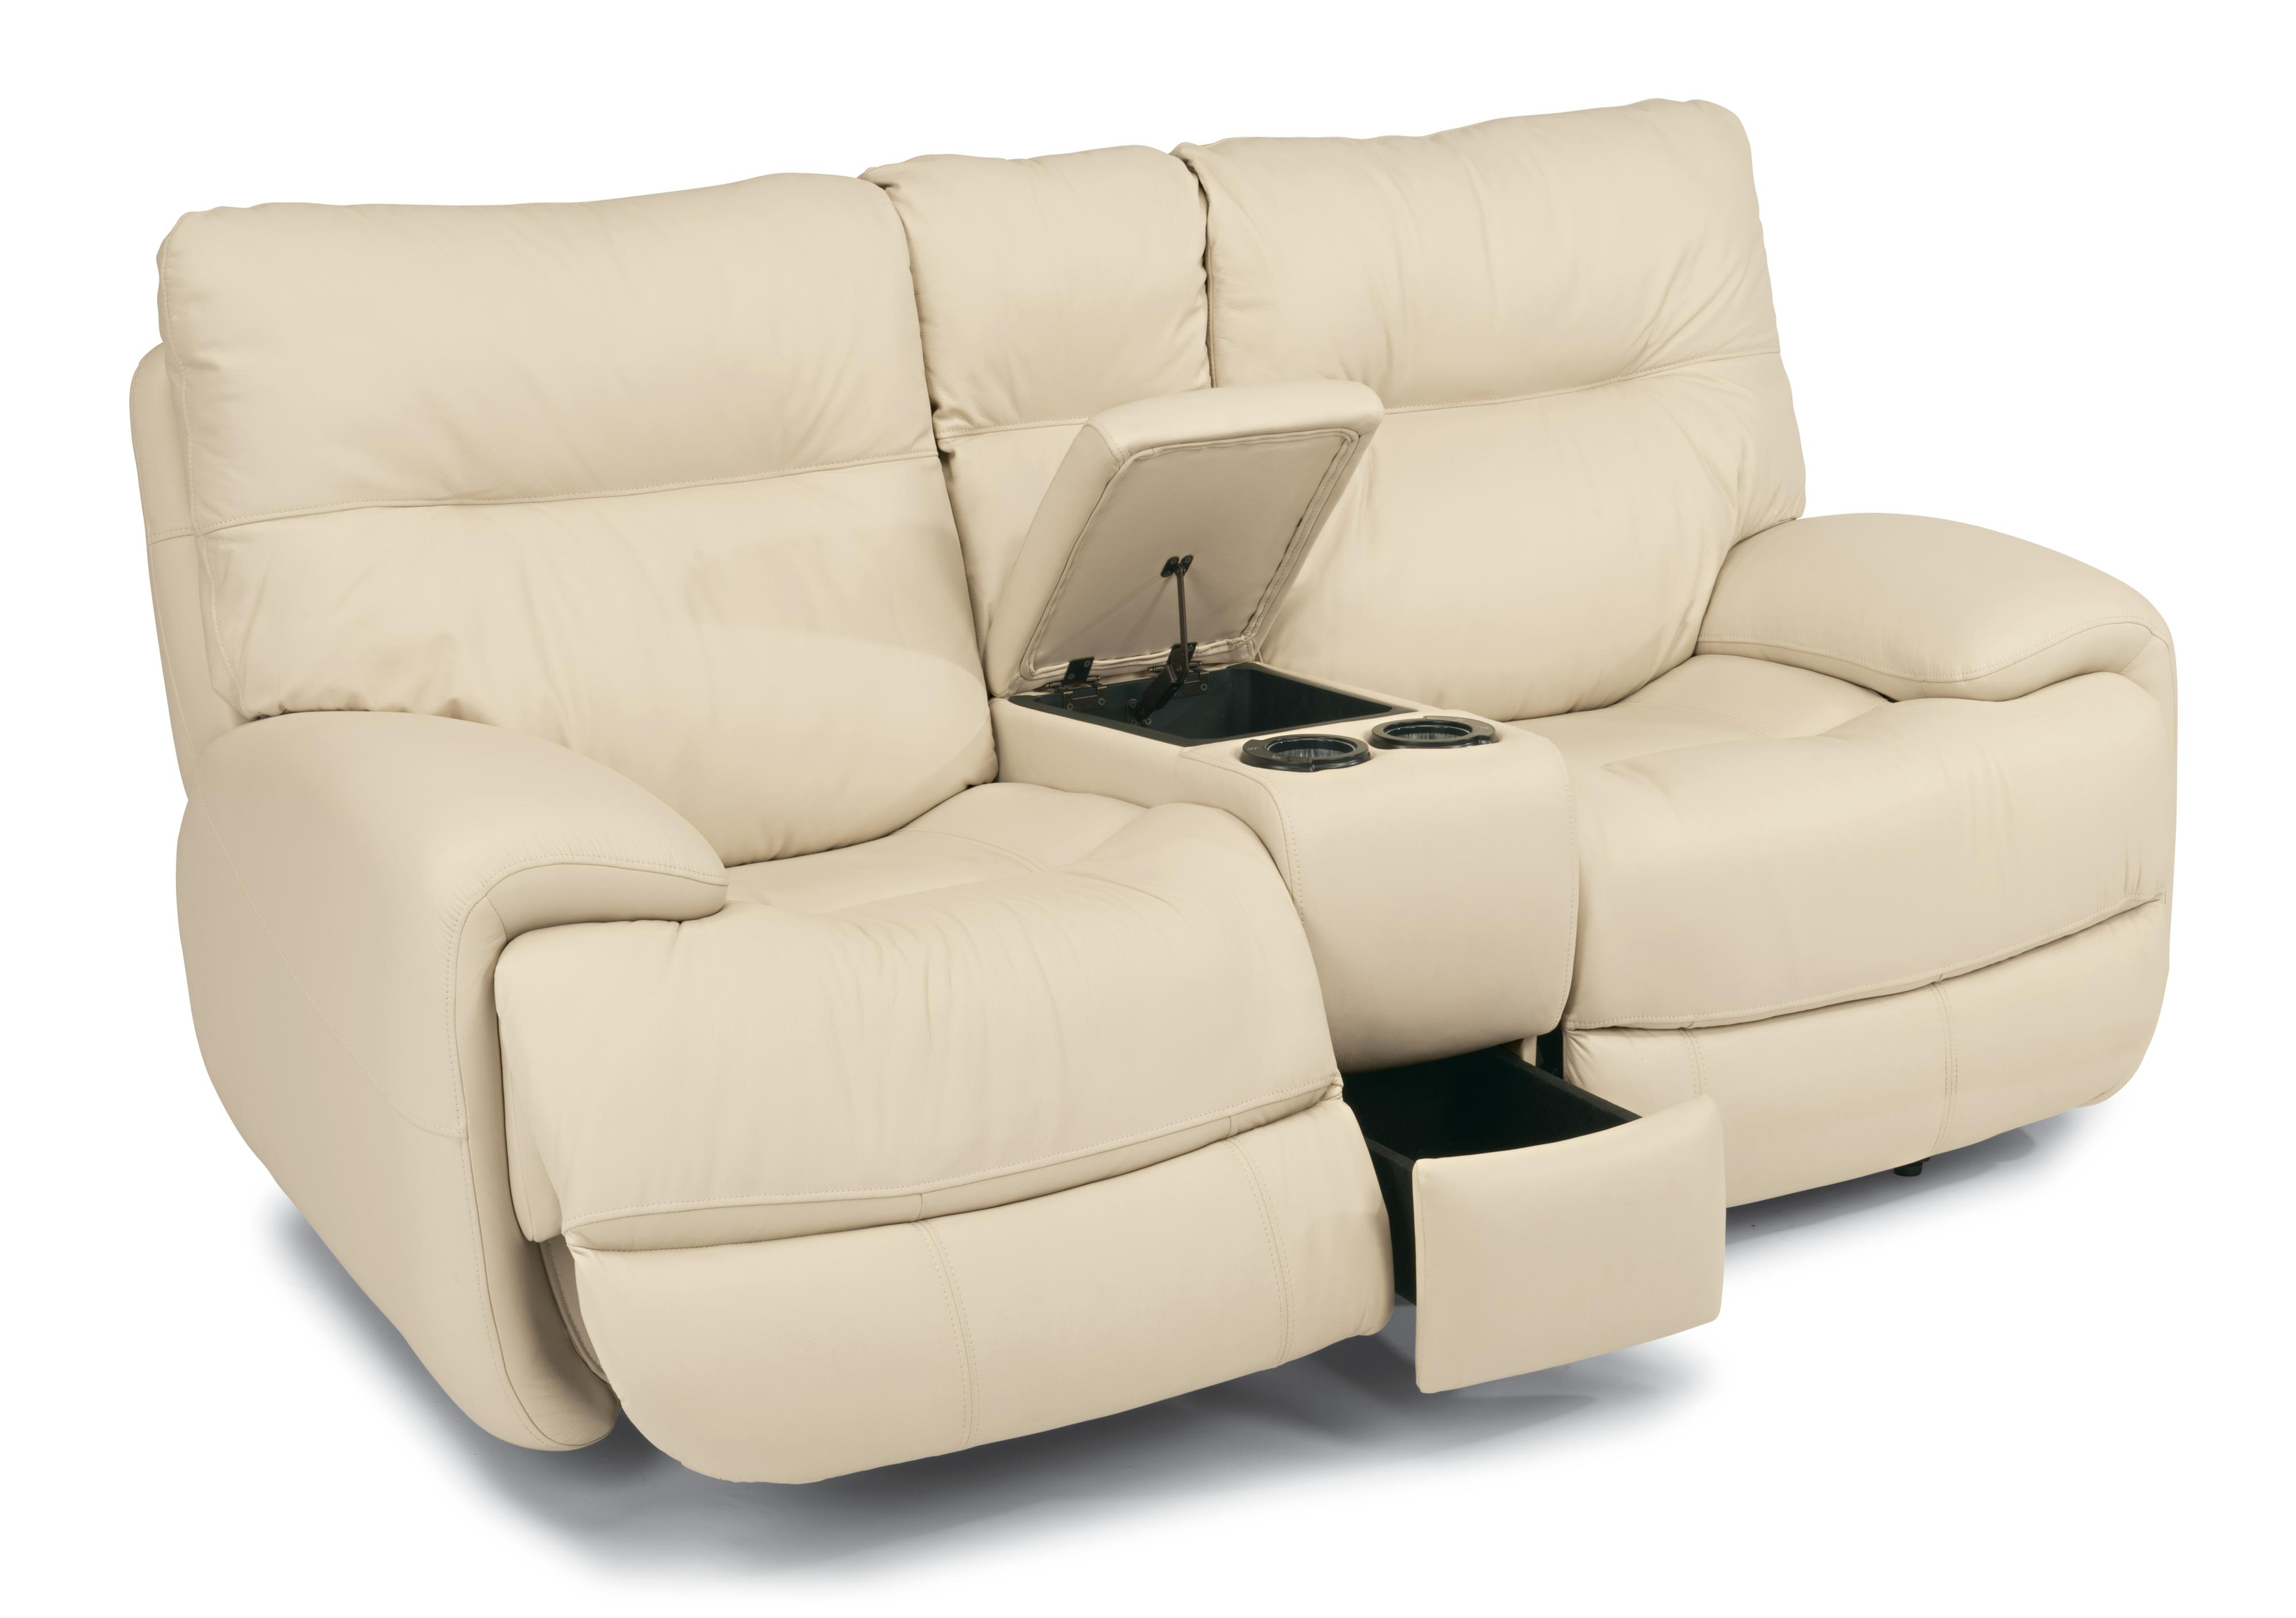 Flexsteel Latitudes - Evian Power Love Seat with Console - Item Number: 1447-604P-675-12